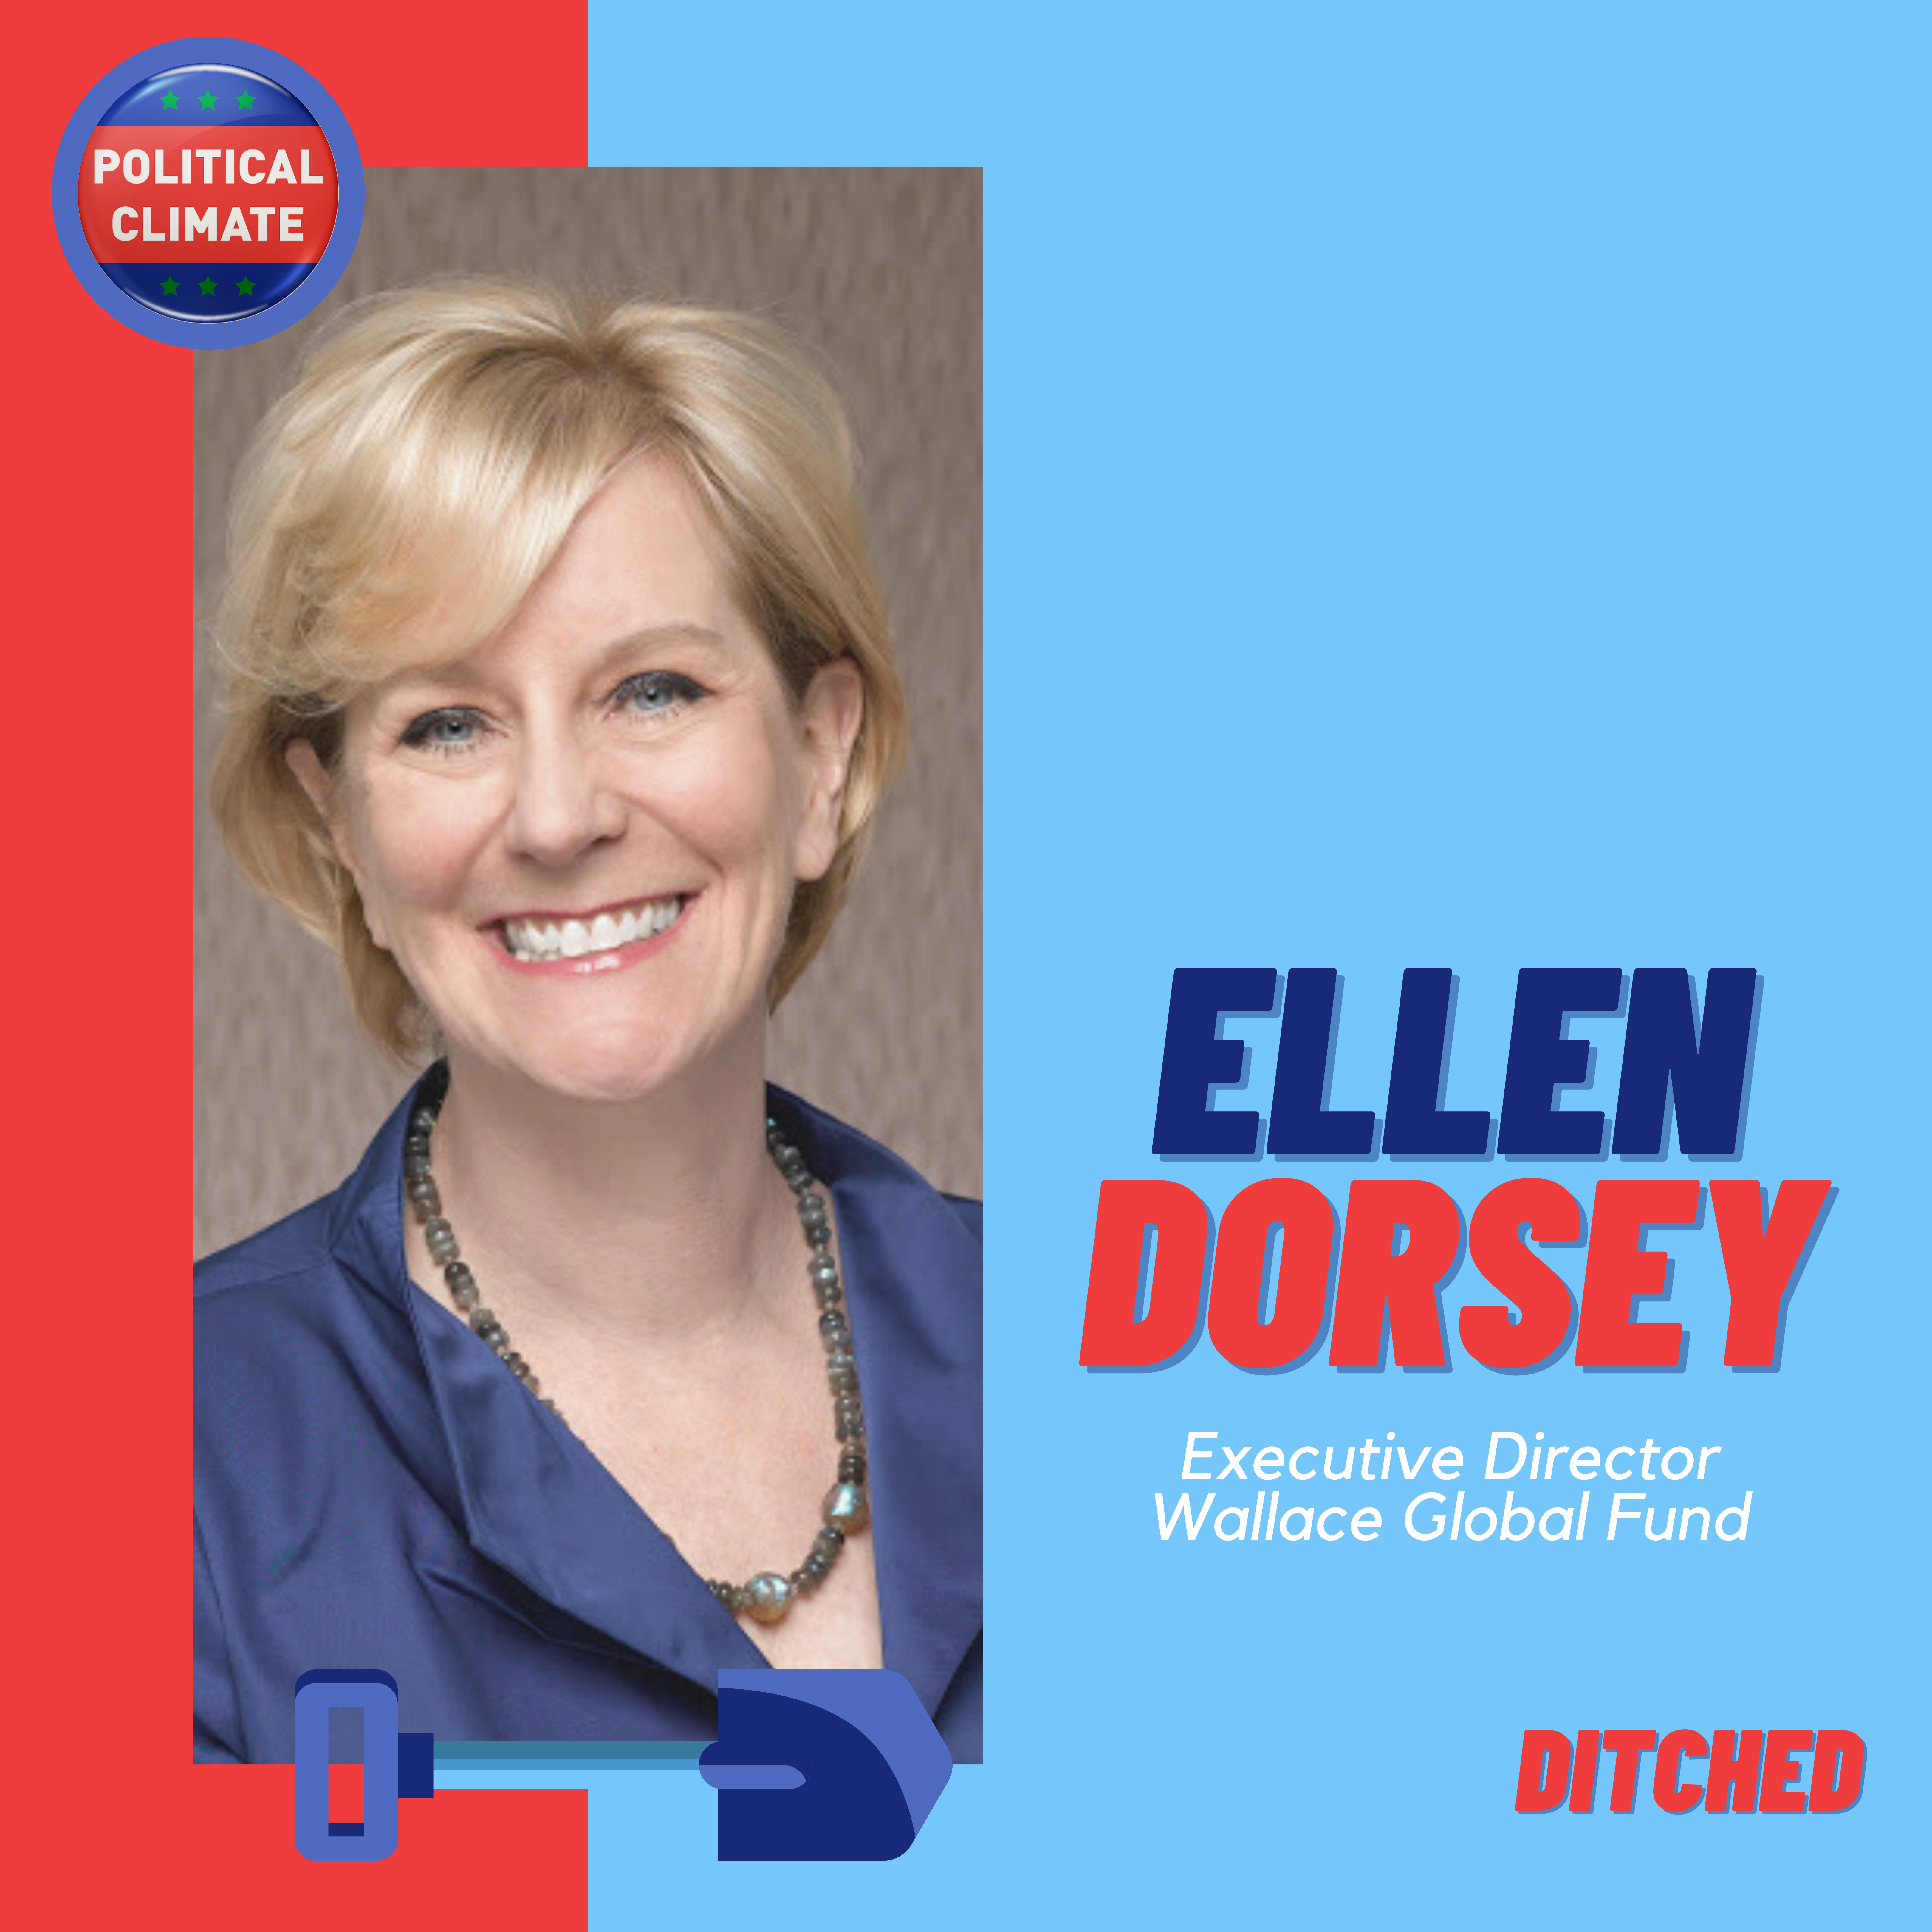 DITCHED: Origins of the Divest/Invest Movement with Ellen Dorsey